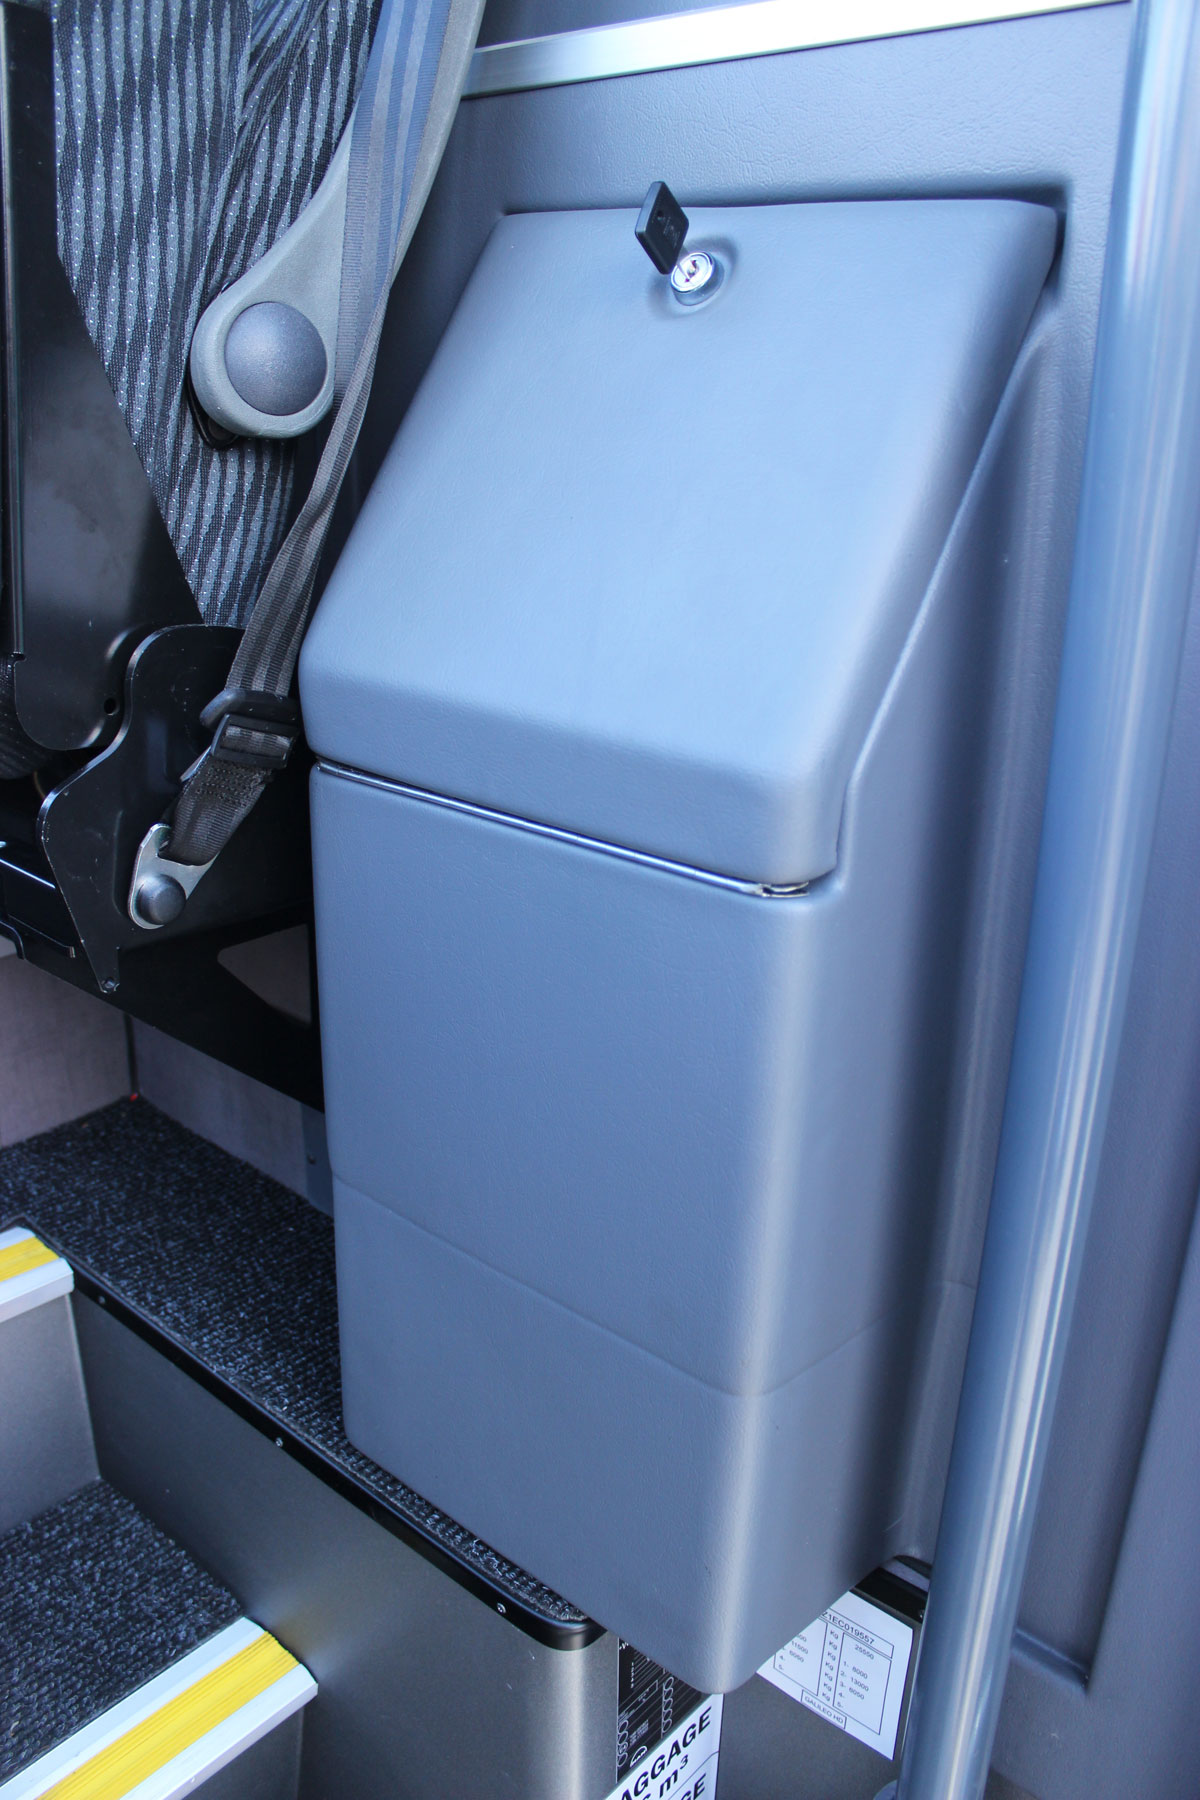 A neat fridge is installed low down alongside the courier seat. It extends under the floor where the front nearside passengers sit